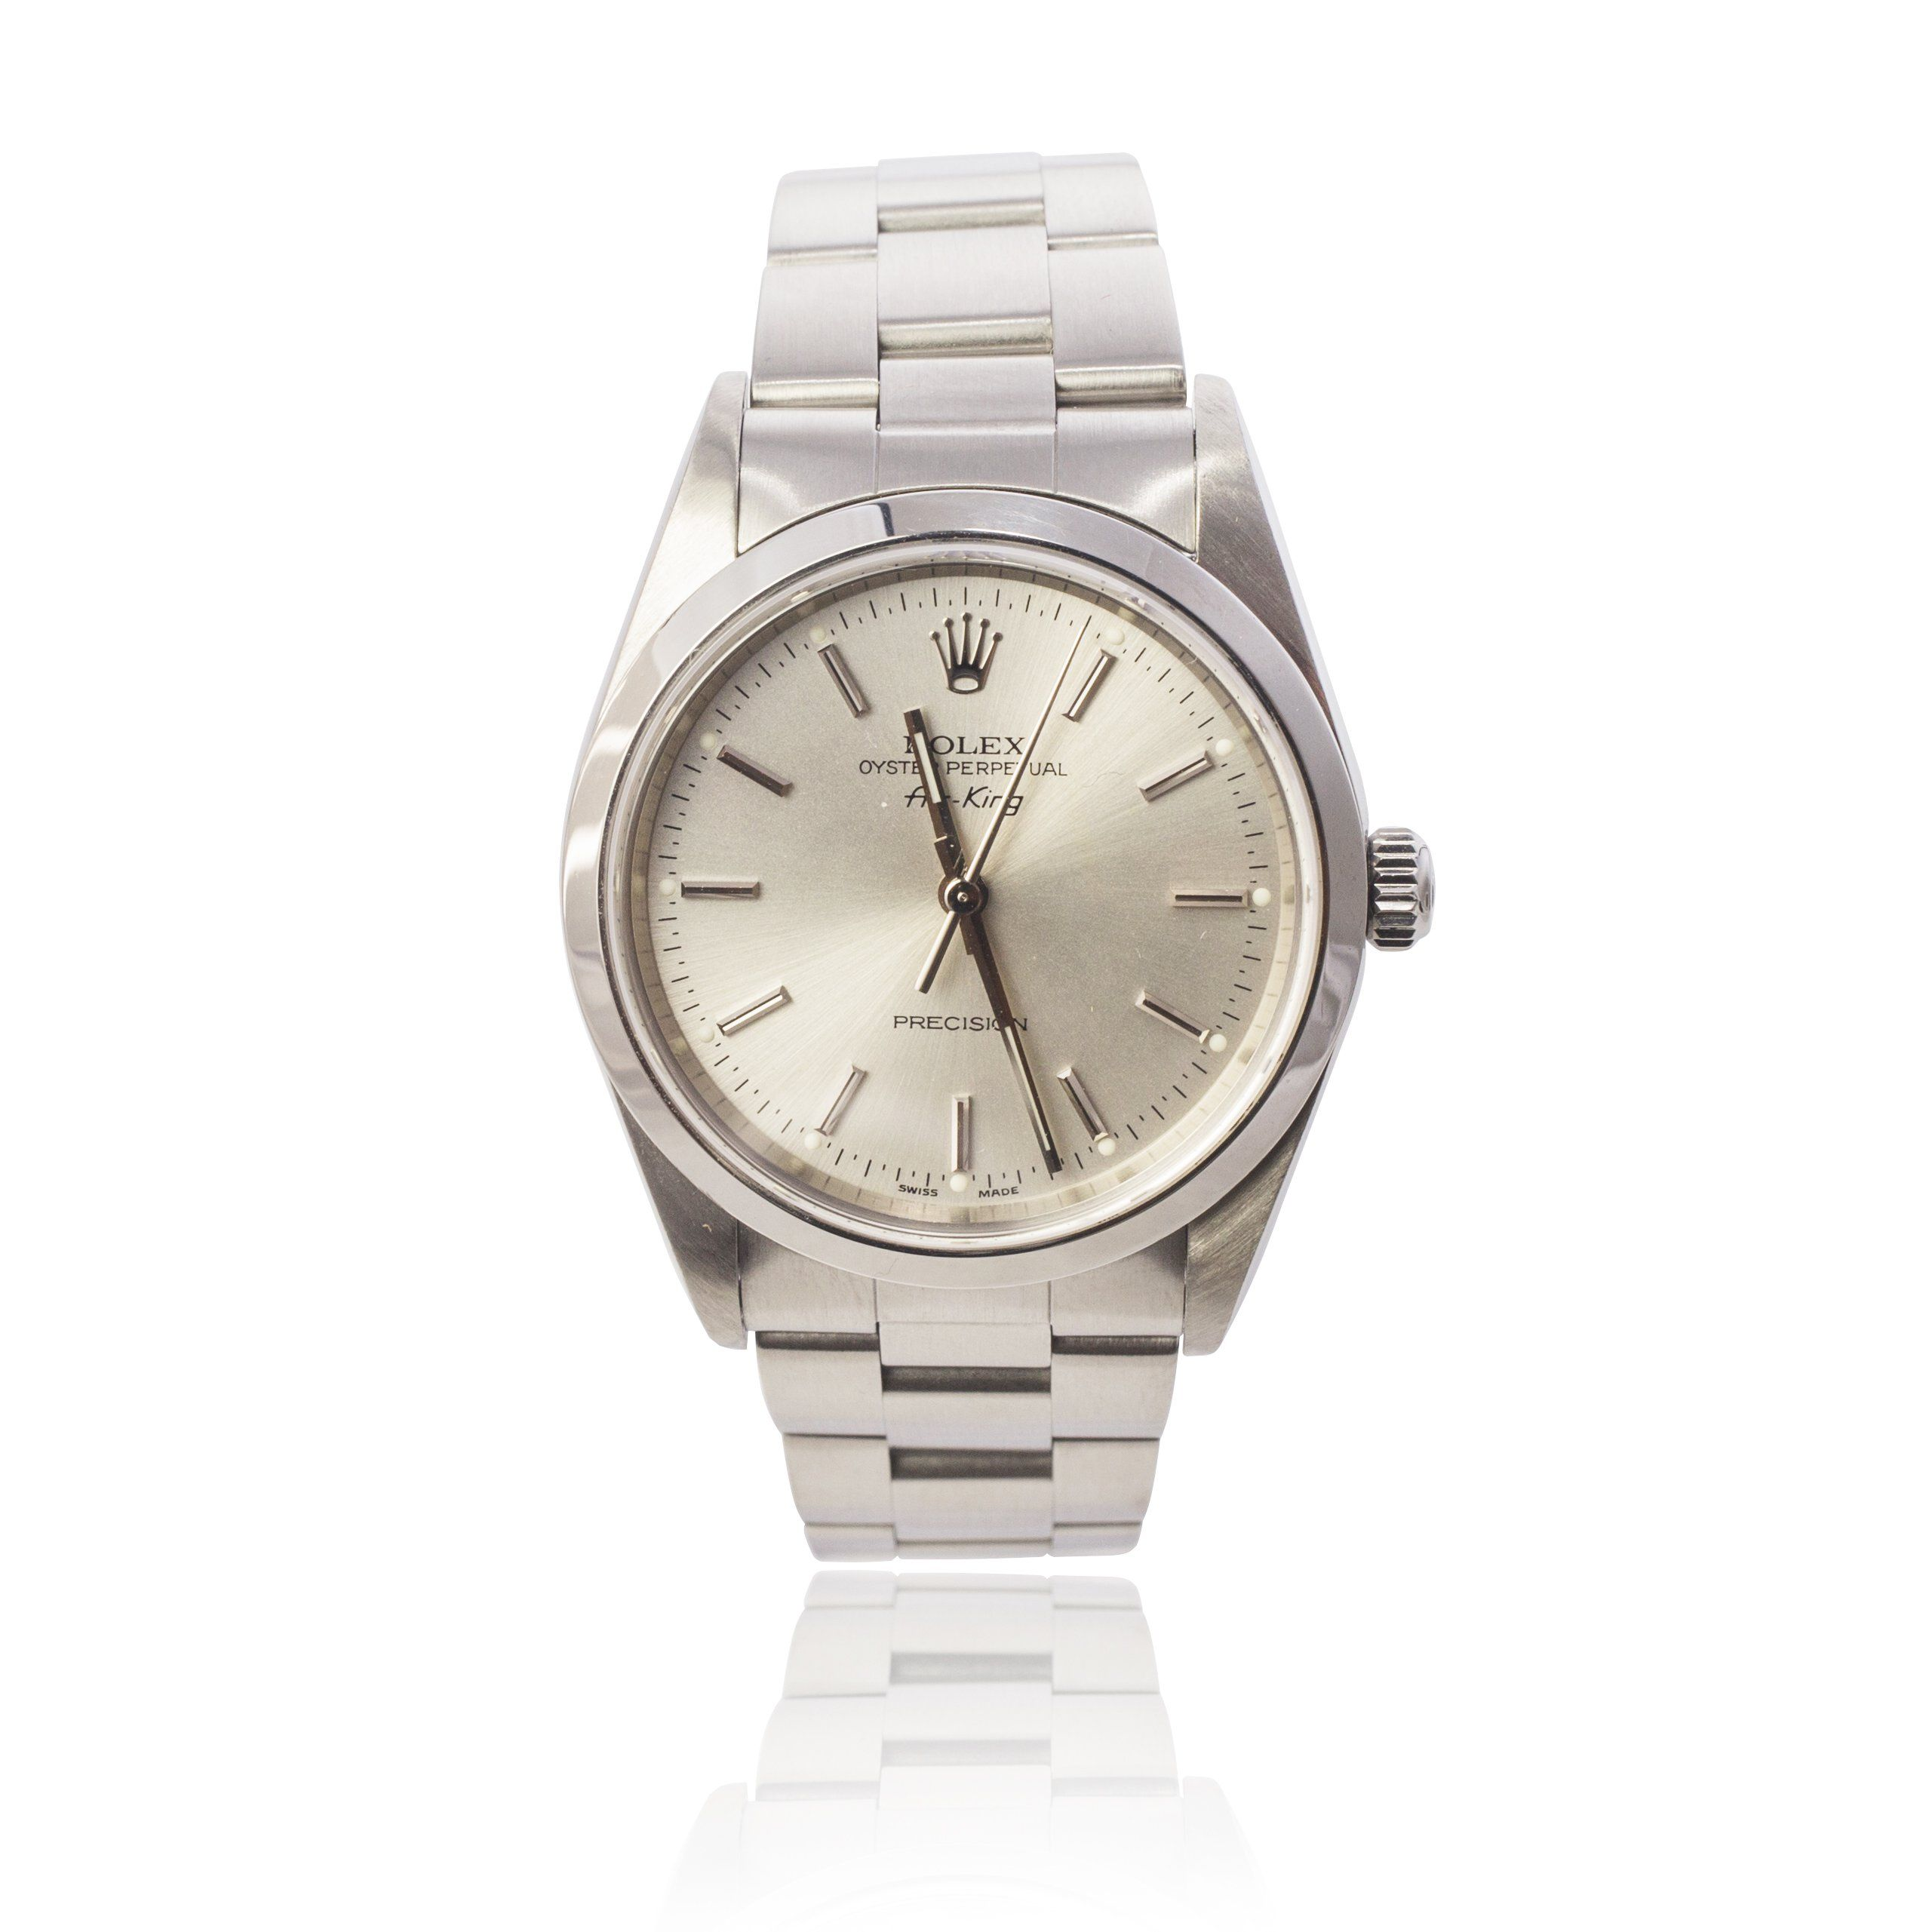 Rolex gents steel oyster perpetual airking ref 14000m